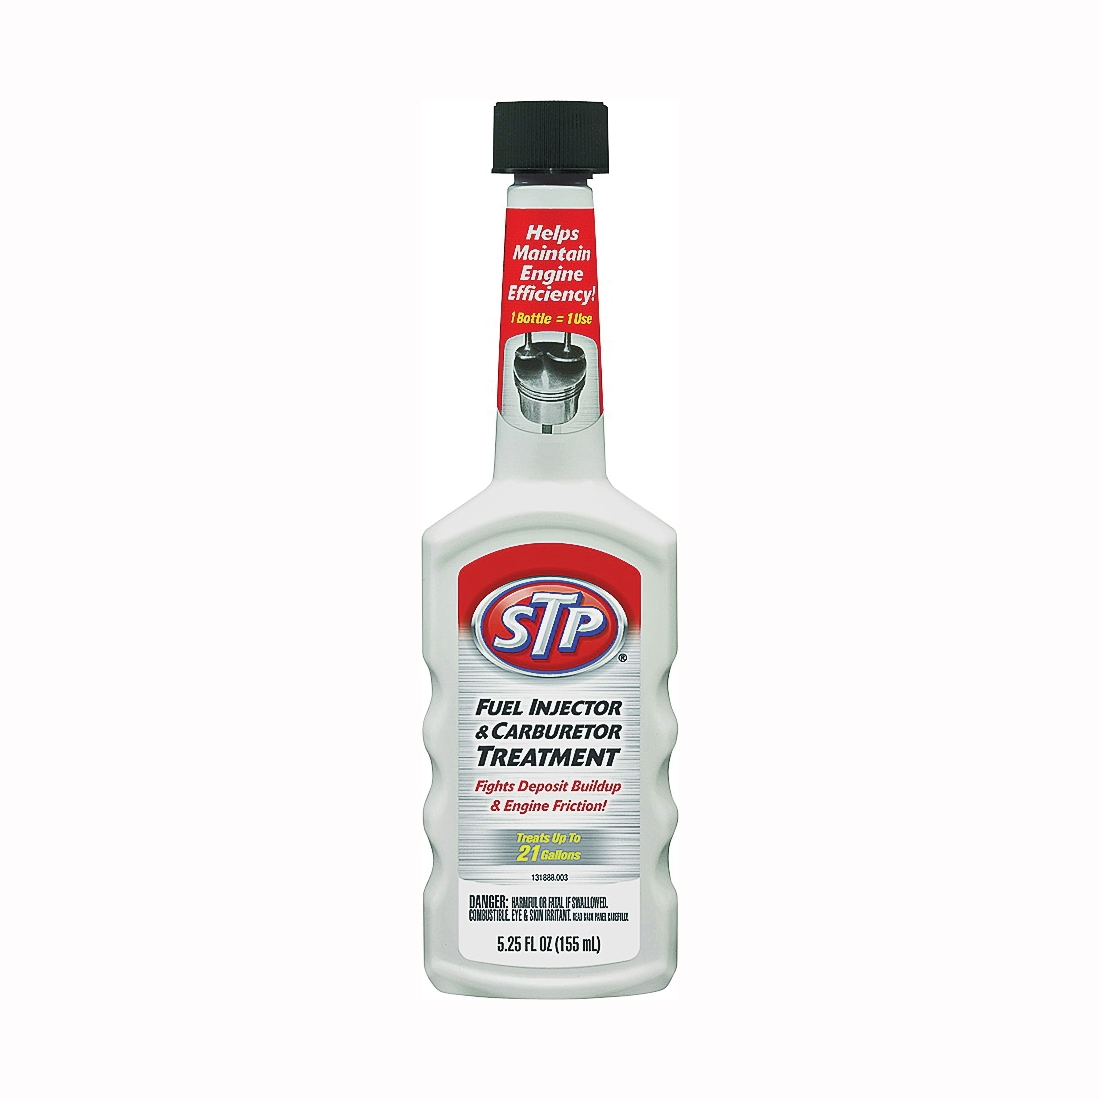 Picture of STP 78571 Fuel Injector Treatment Straw, 5.25 oz Package, Bottle